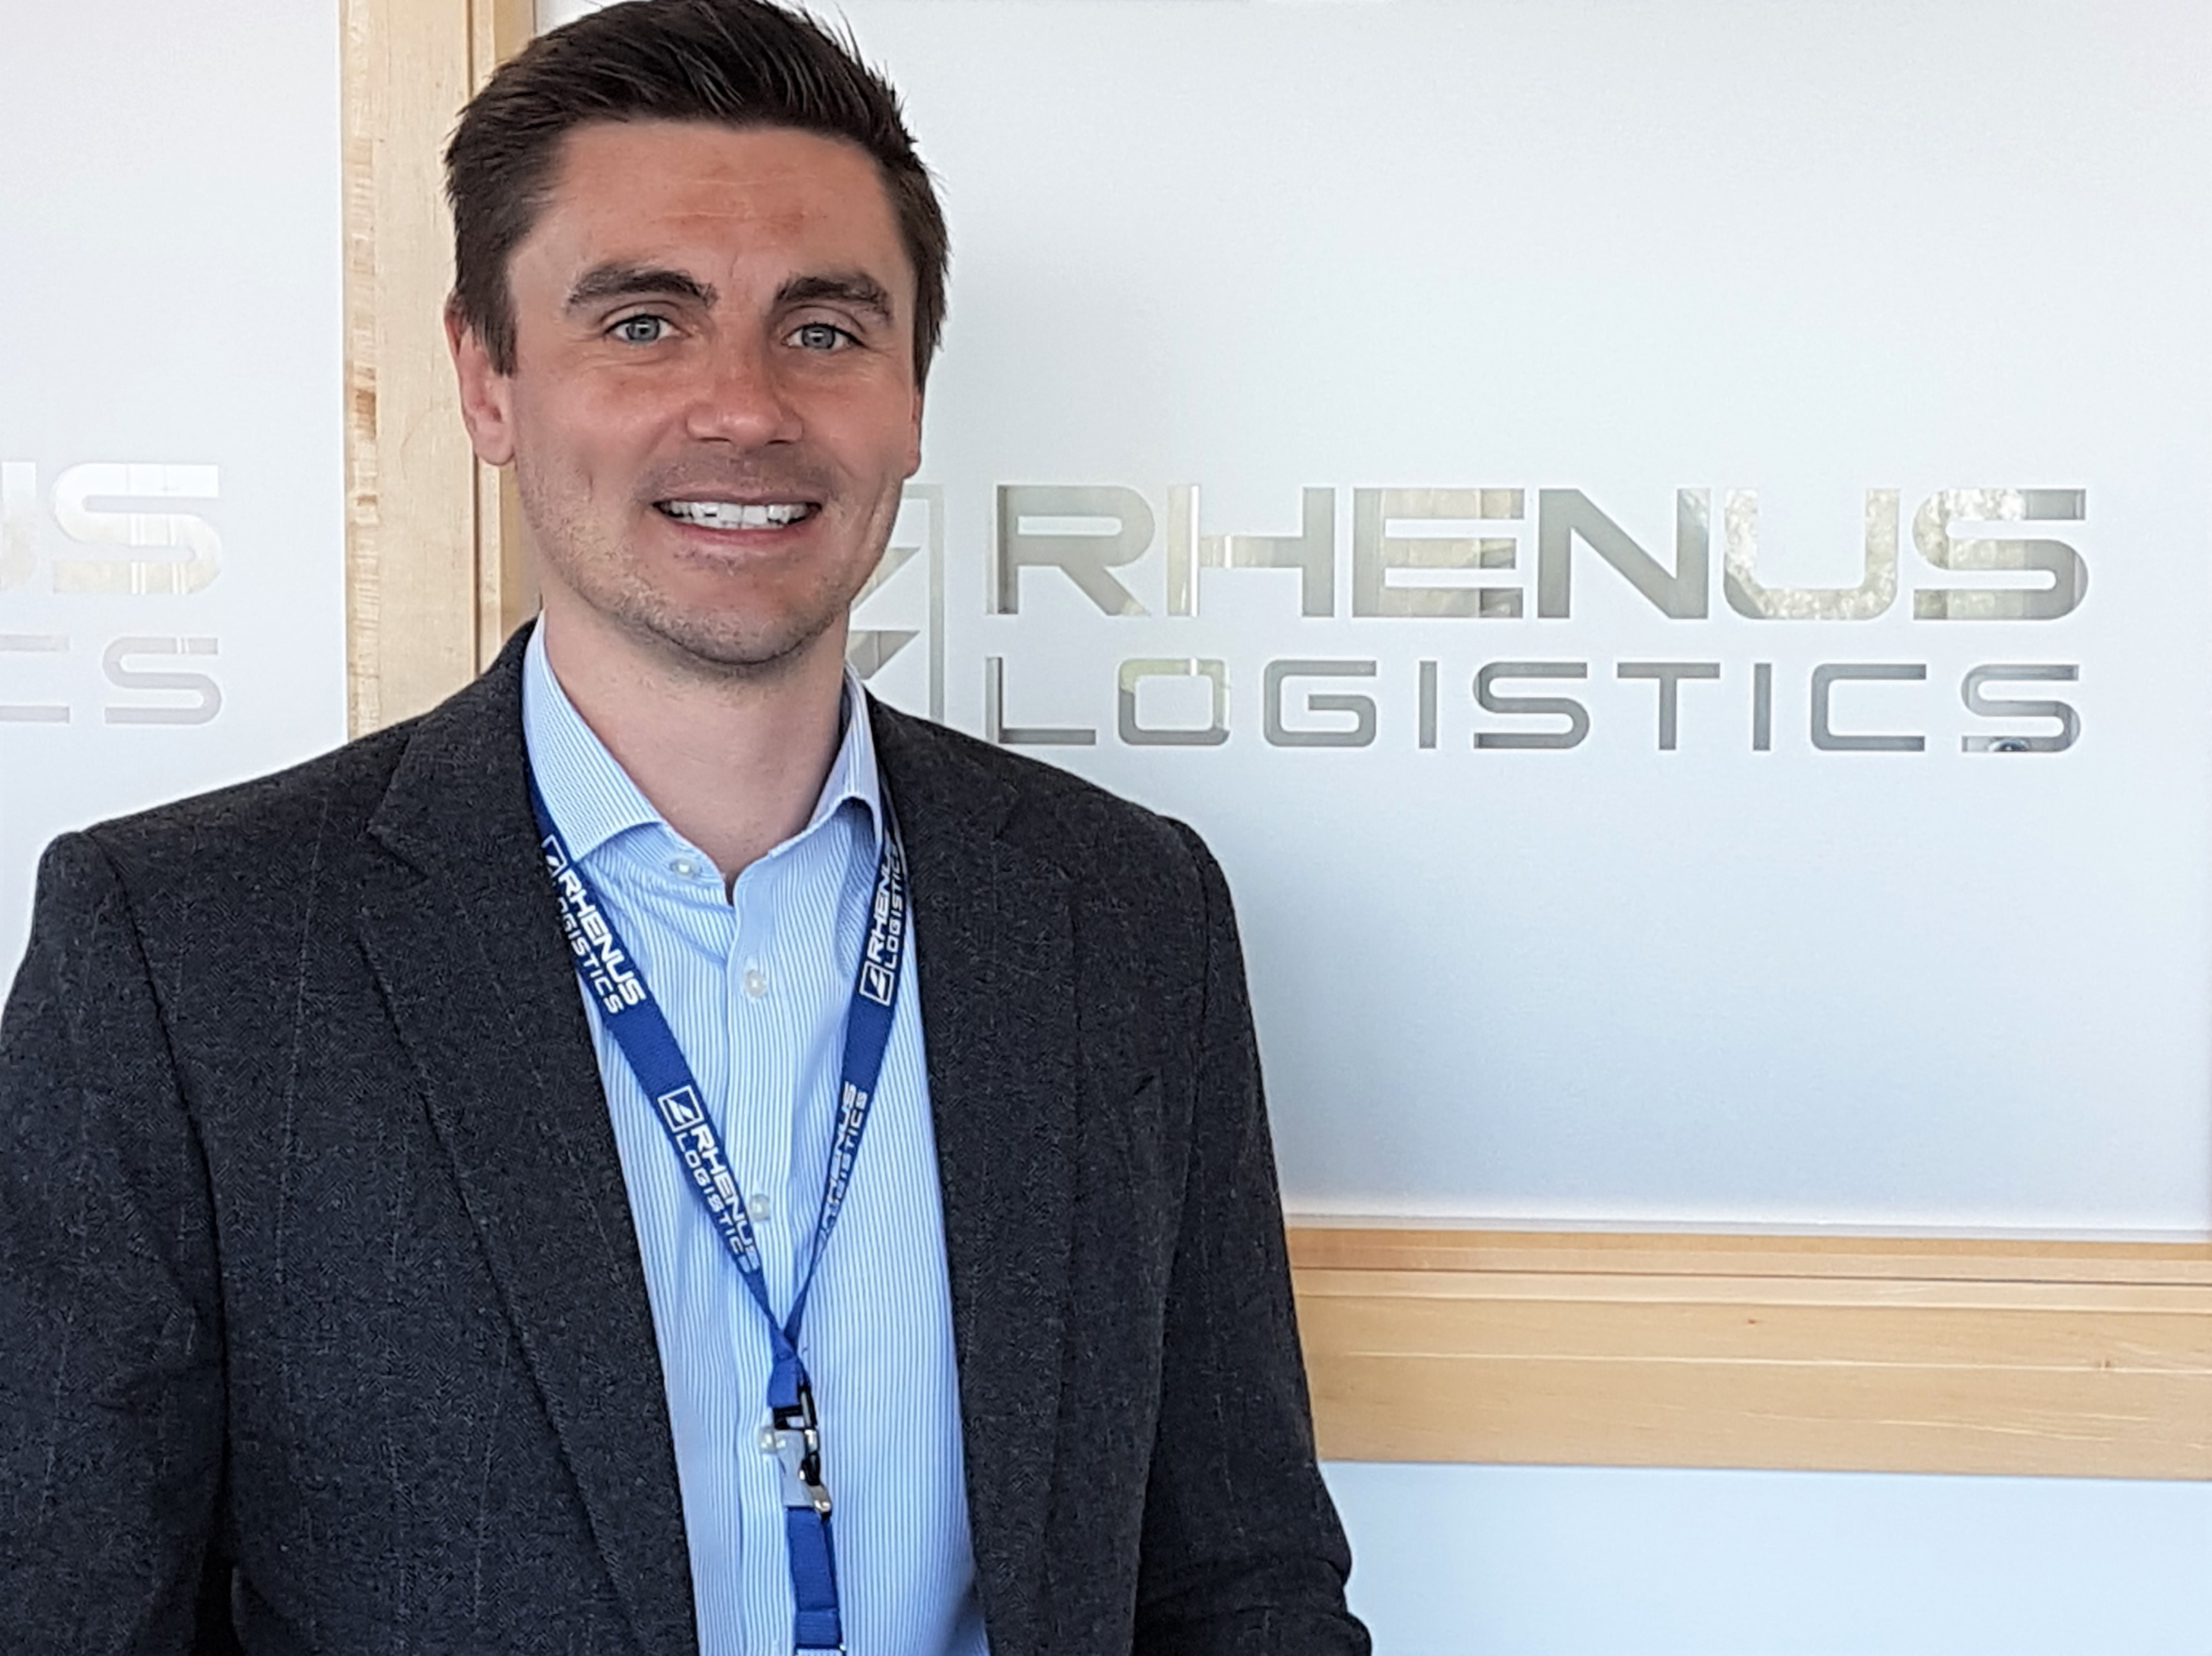 Rhenus appoints new European Sector Manager